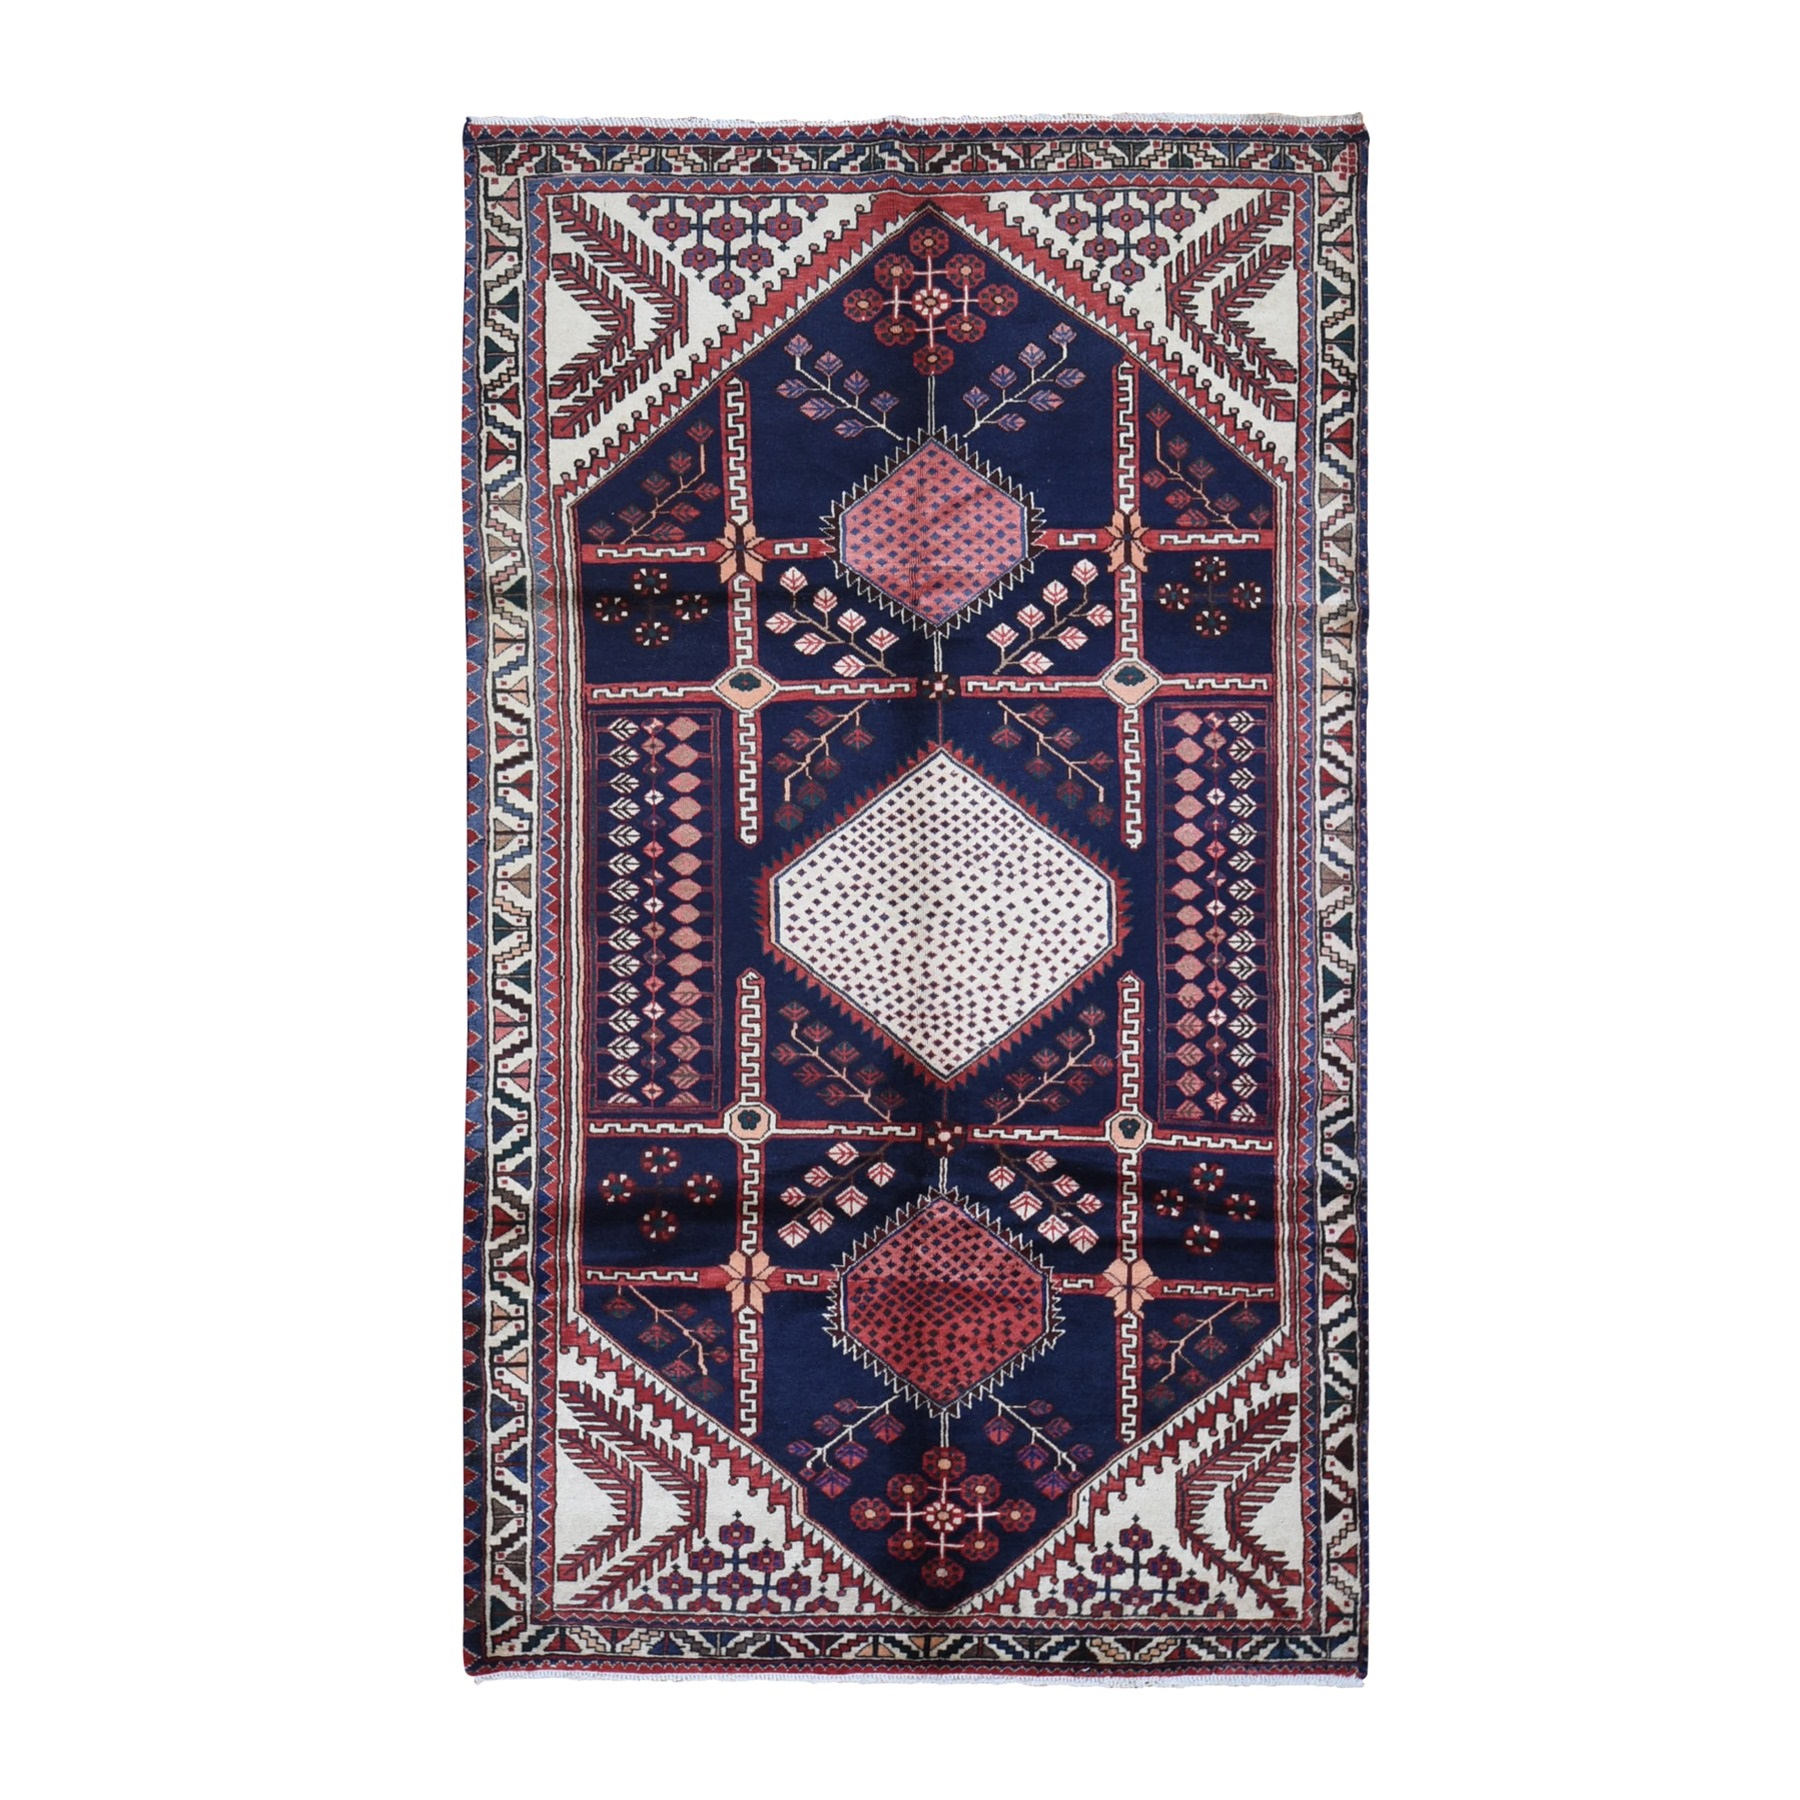 "5'2""x9' Navy Blue Vintage Persian Afshar Serrated Medallions Abrash Organic Wool Hand Knotted Oriental Rug"